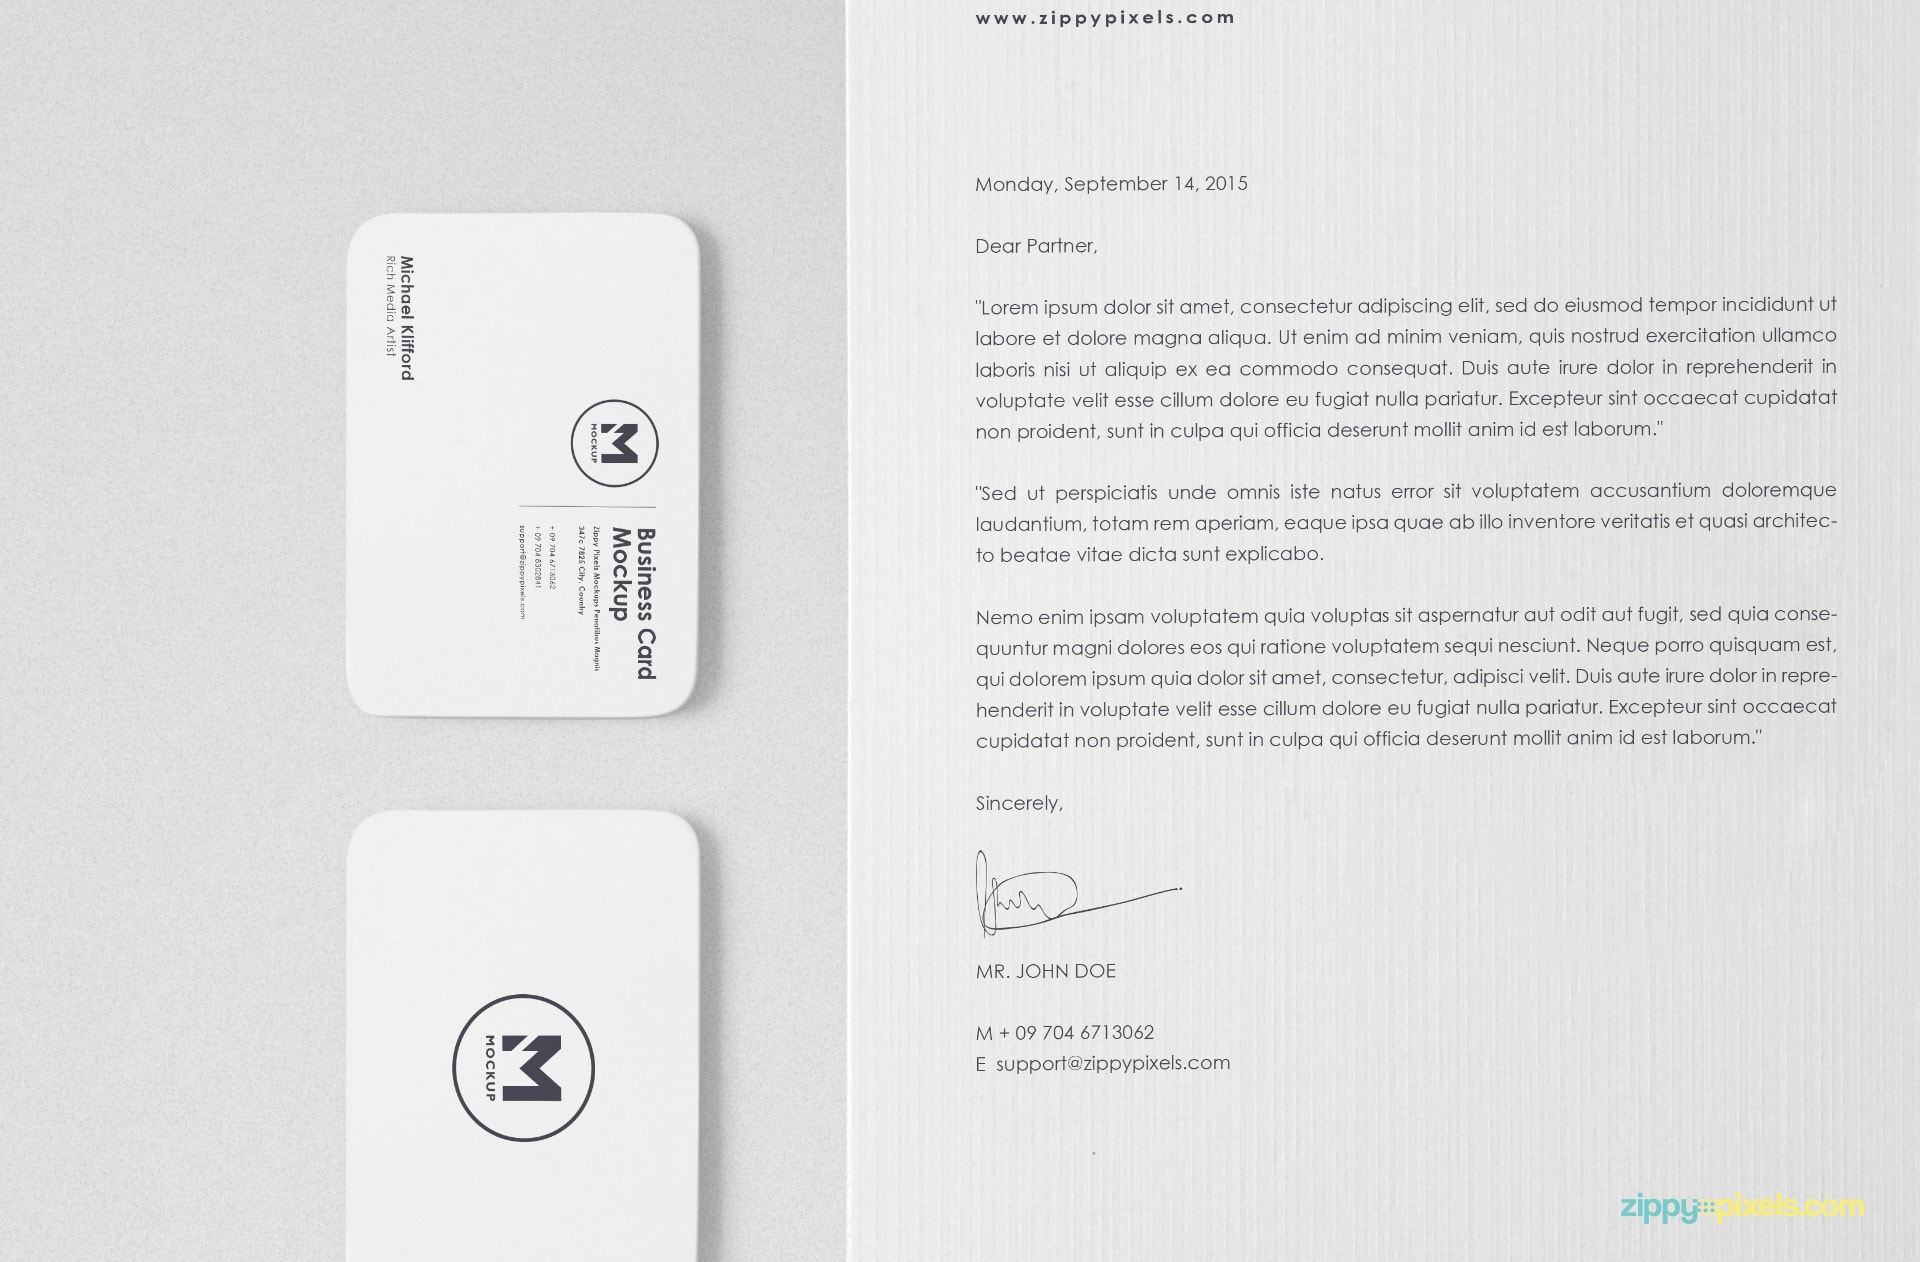 perfect way to showcase your letterhead and business card designs